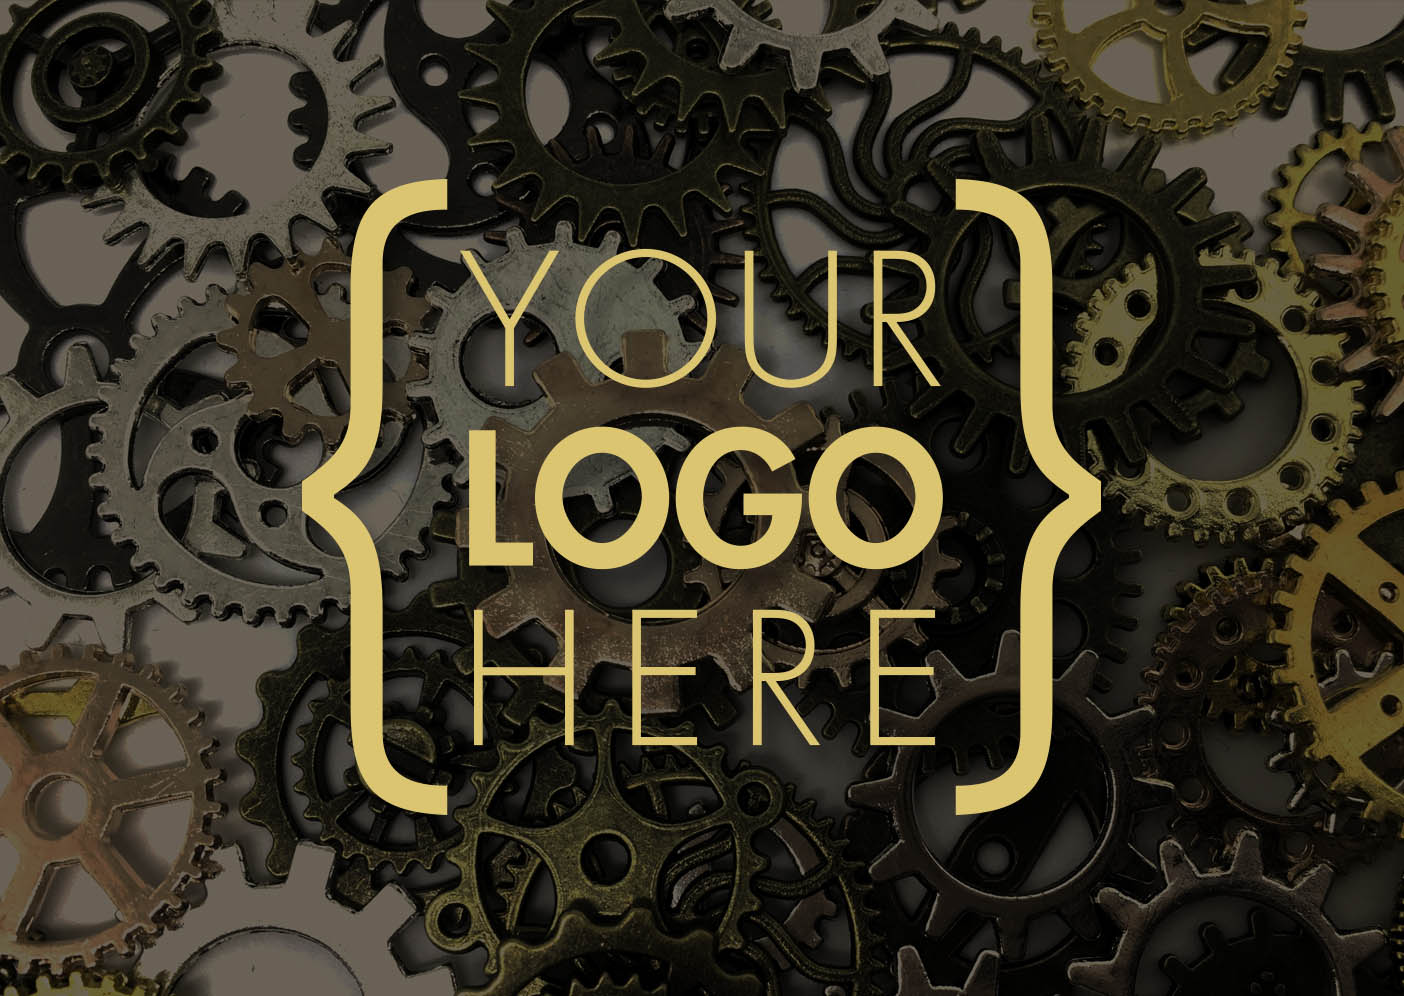 'Your Logo Here' over an image of gears